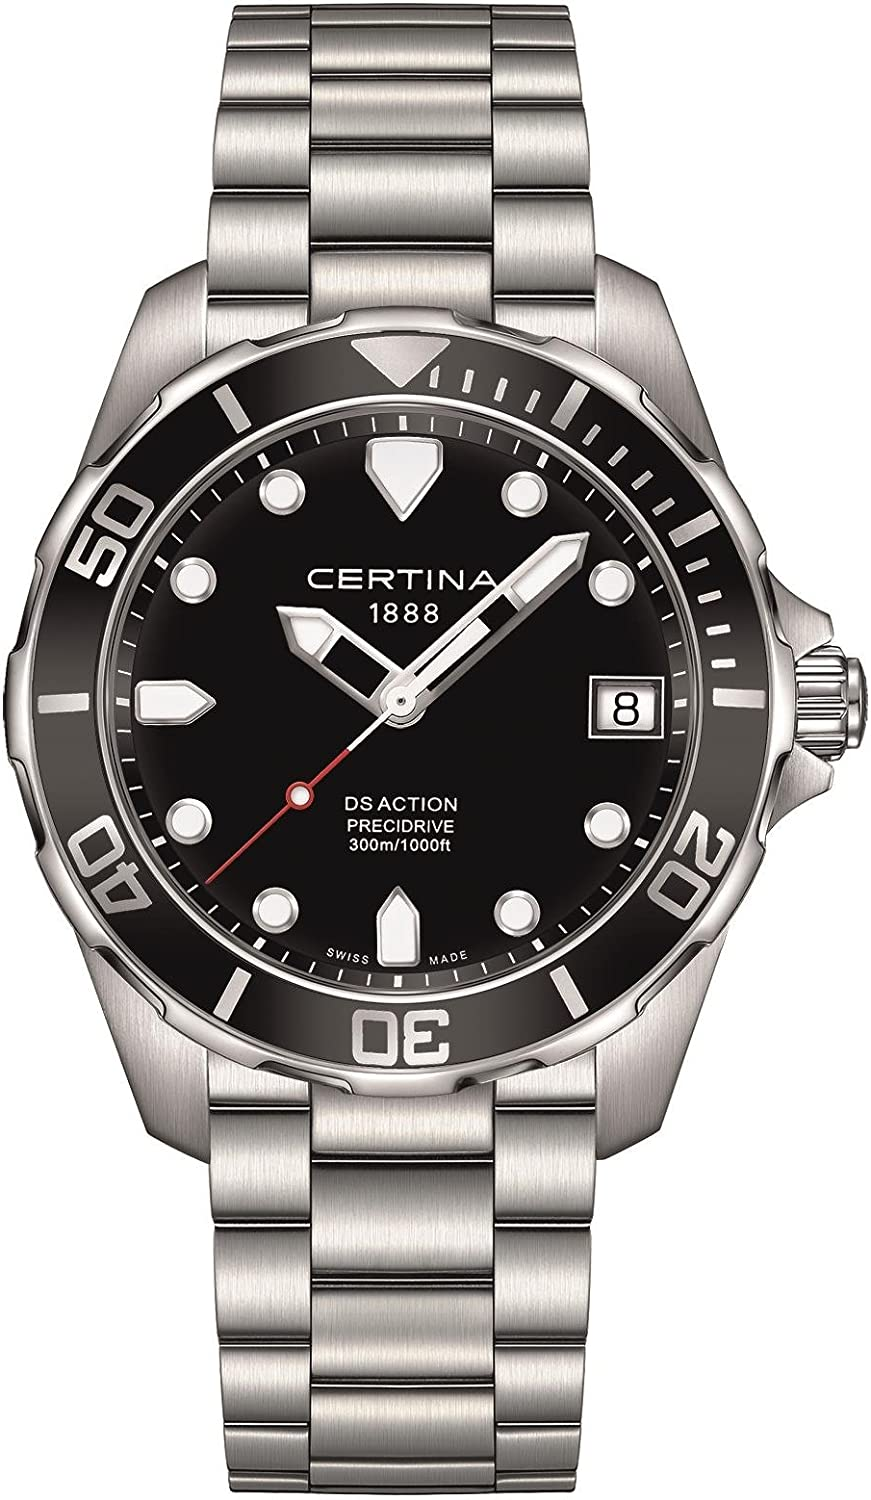 Certina DS Action – 3 Hands Black Dial Stainless Steel Mens Watch C0324101105100